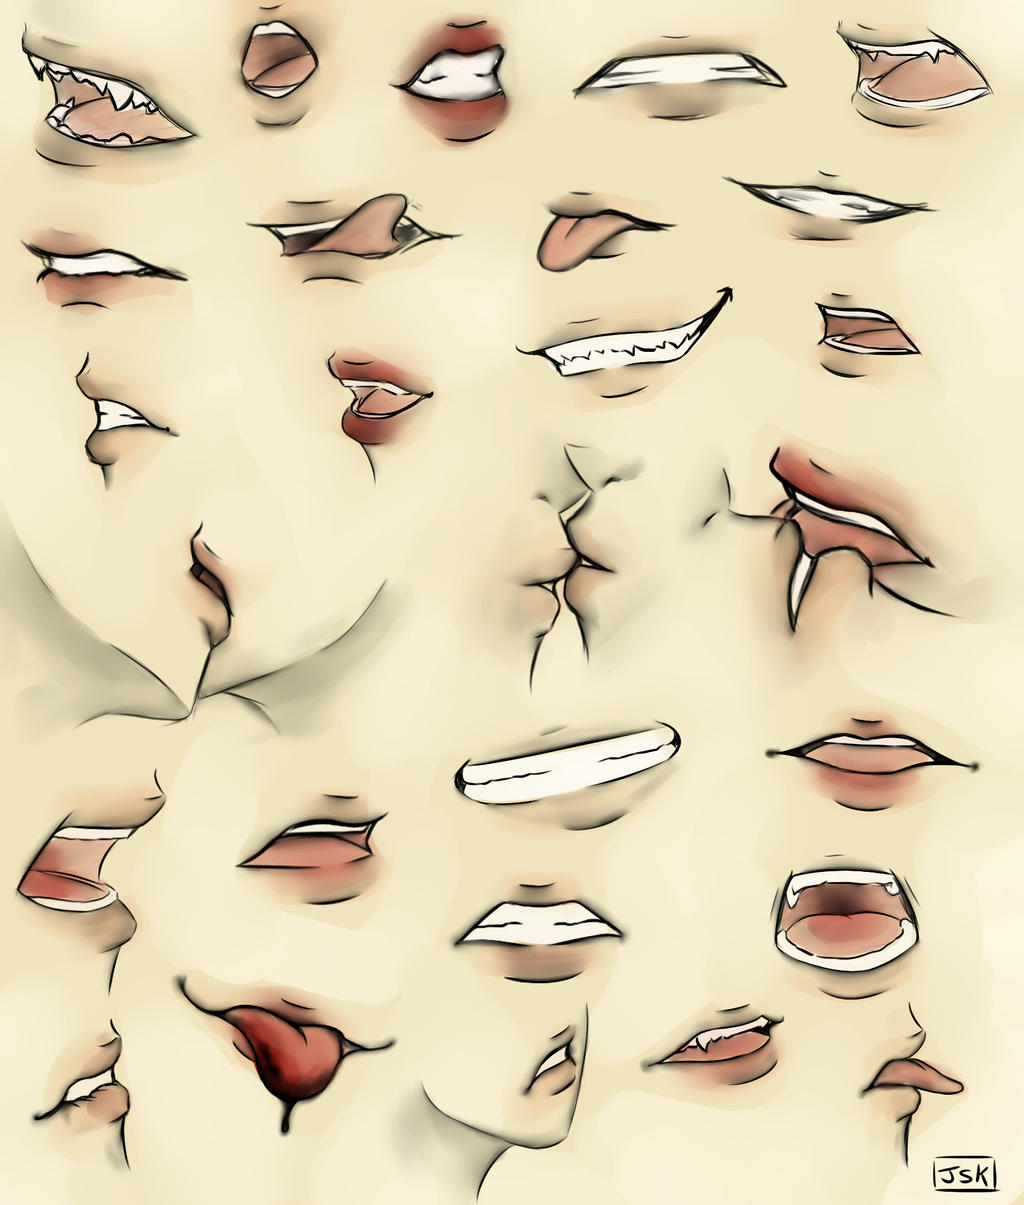 Mouth Practice by Juuria66